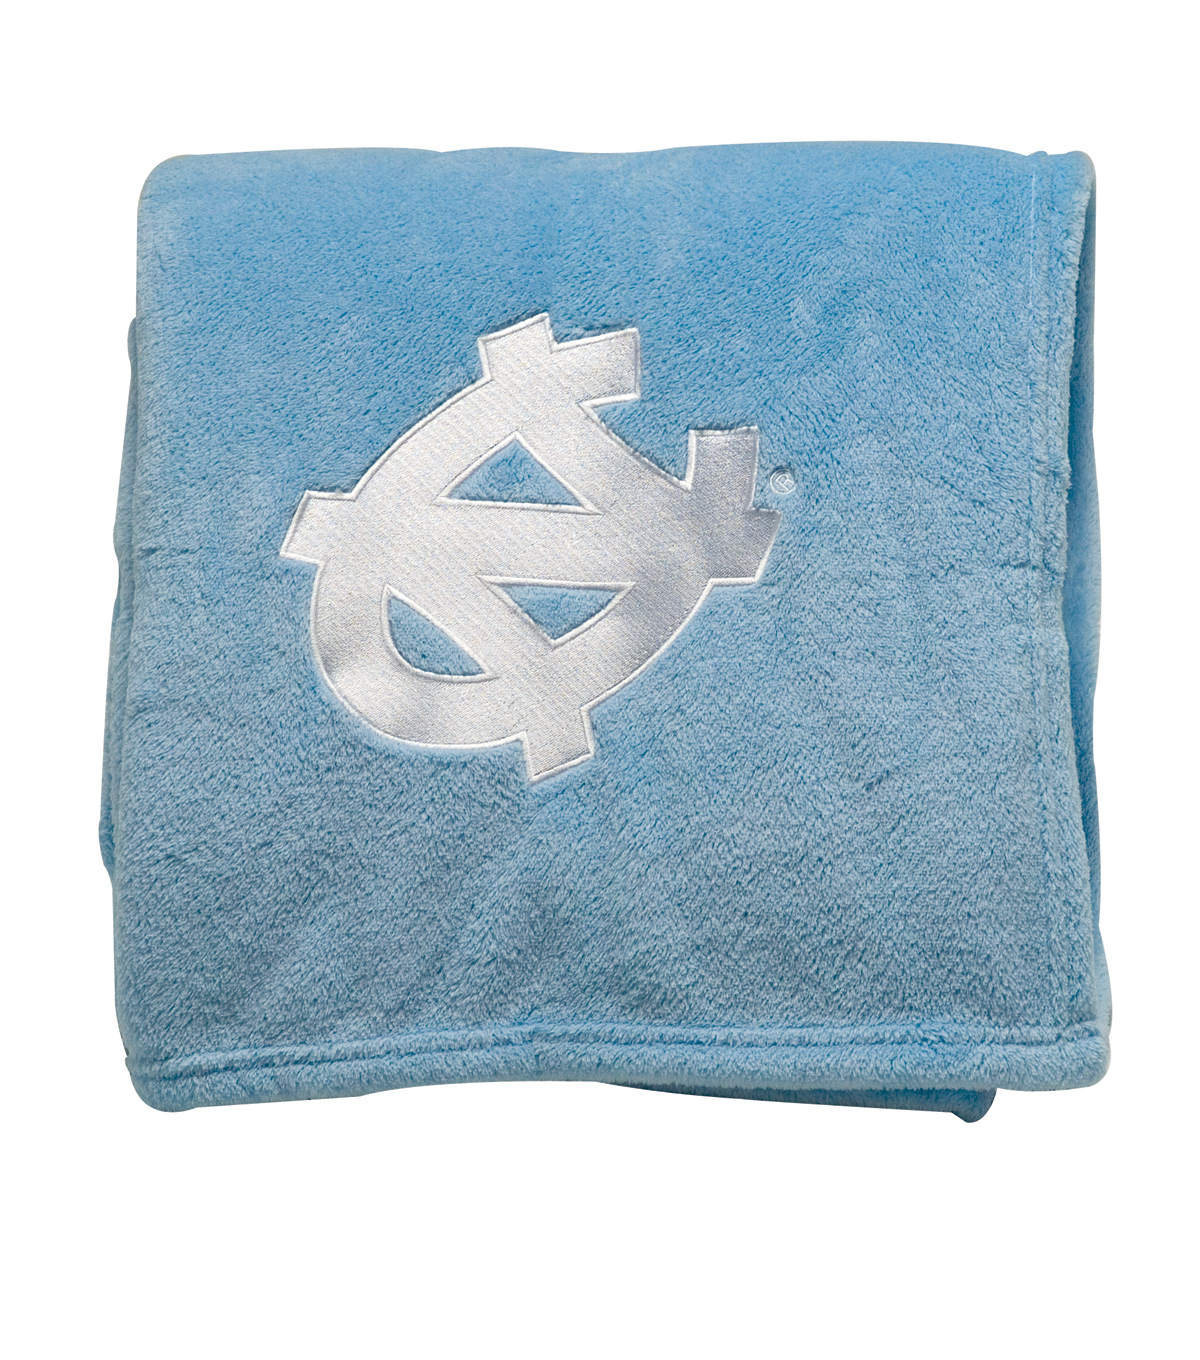 University of North Carolina Tarheels Throw